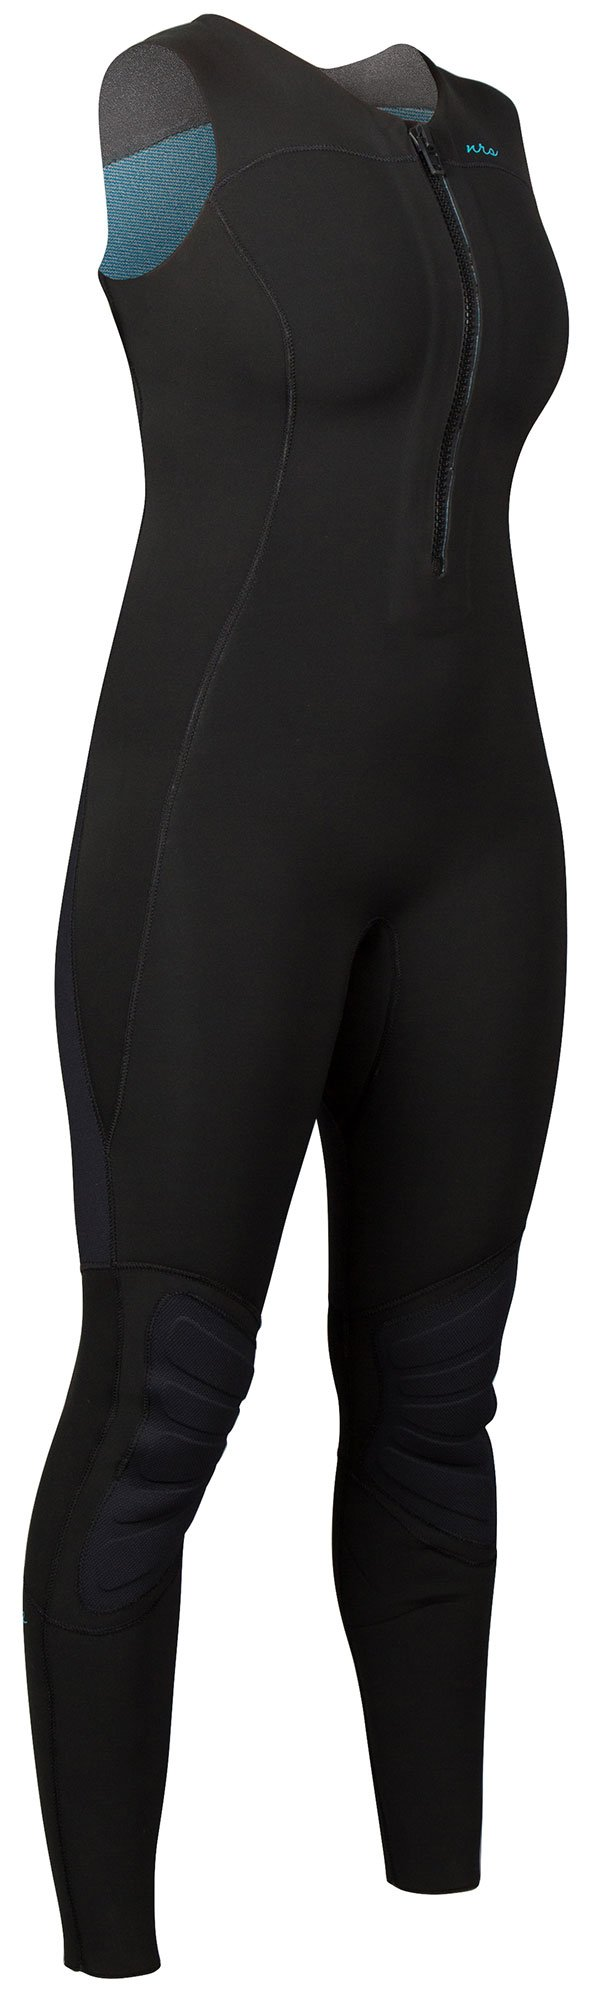 NRS 3.0 Farmer Jane Wetsuit - Women's Black XXL